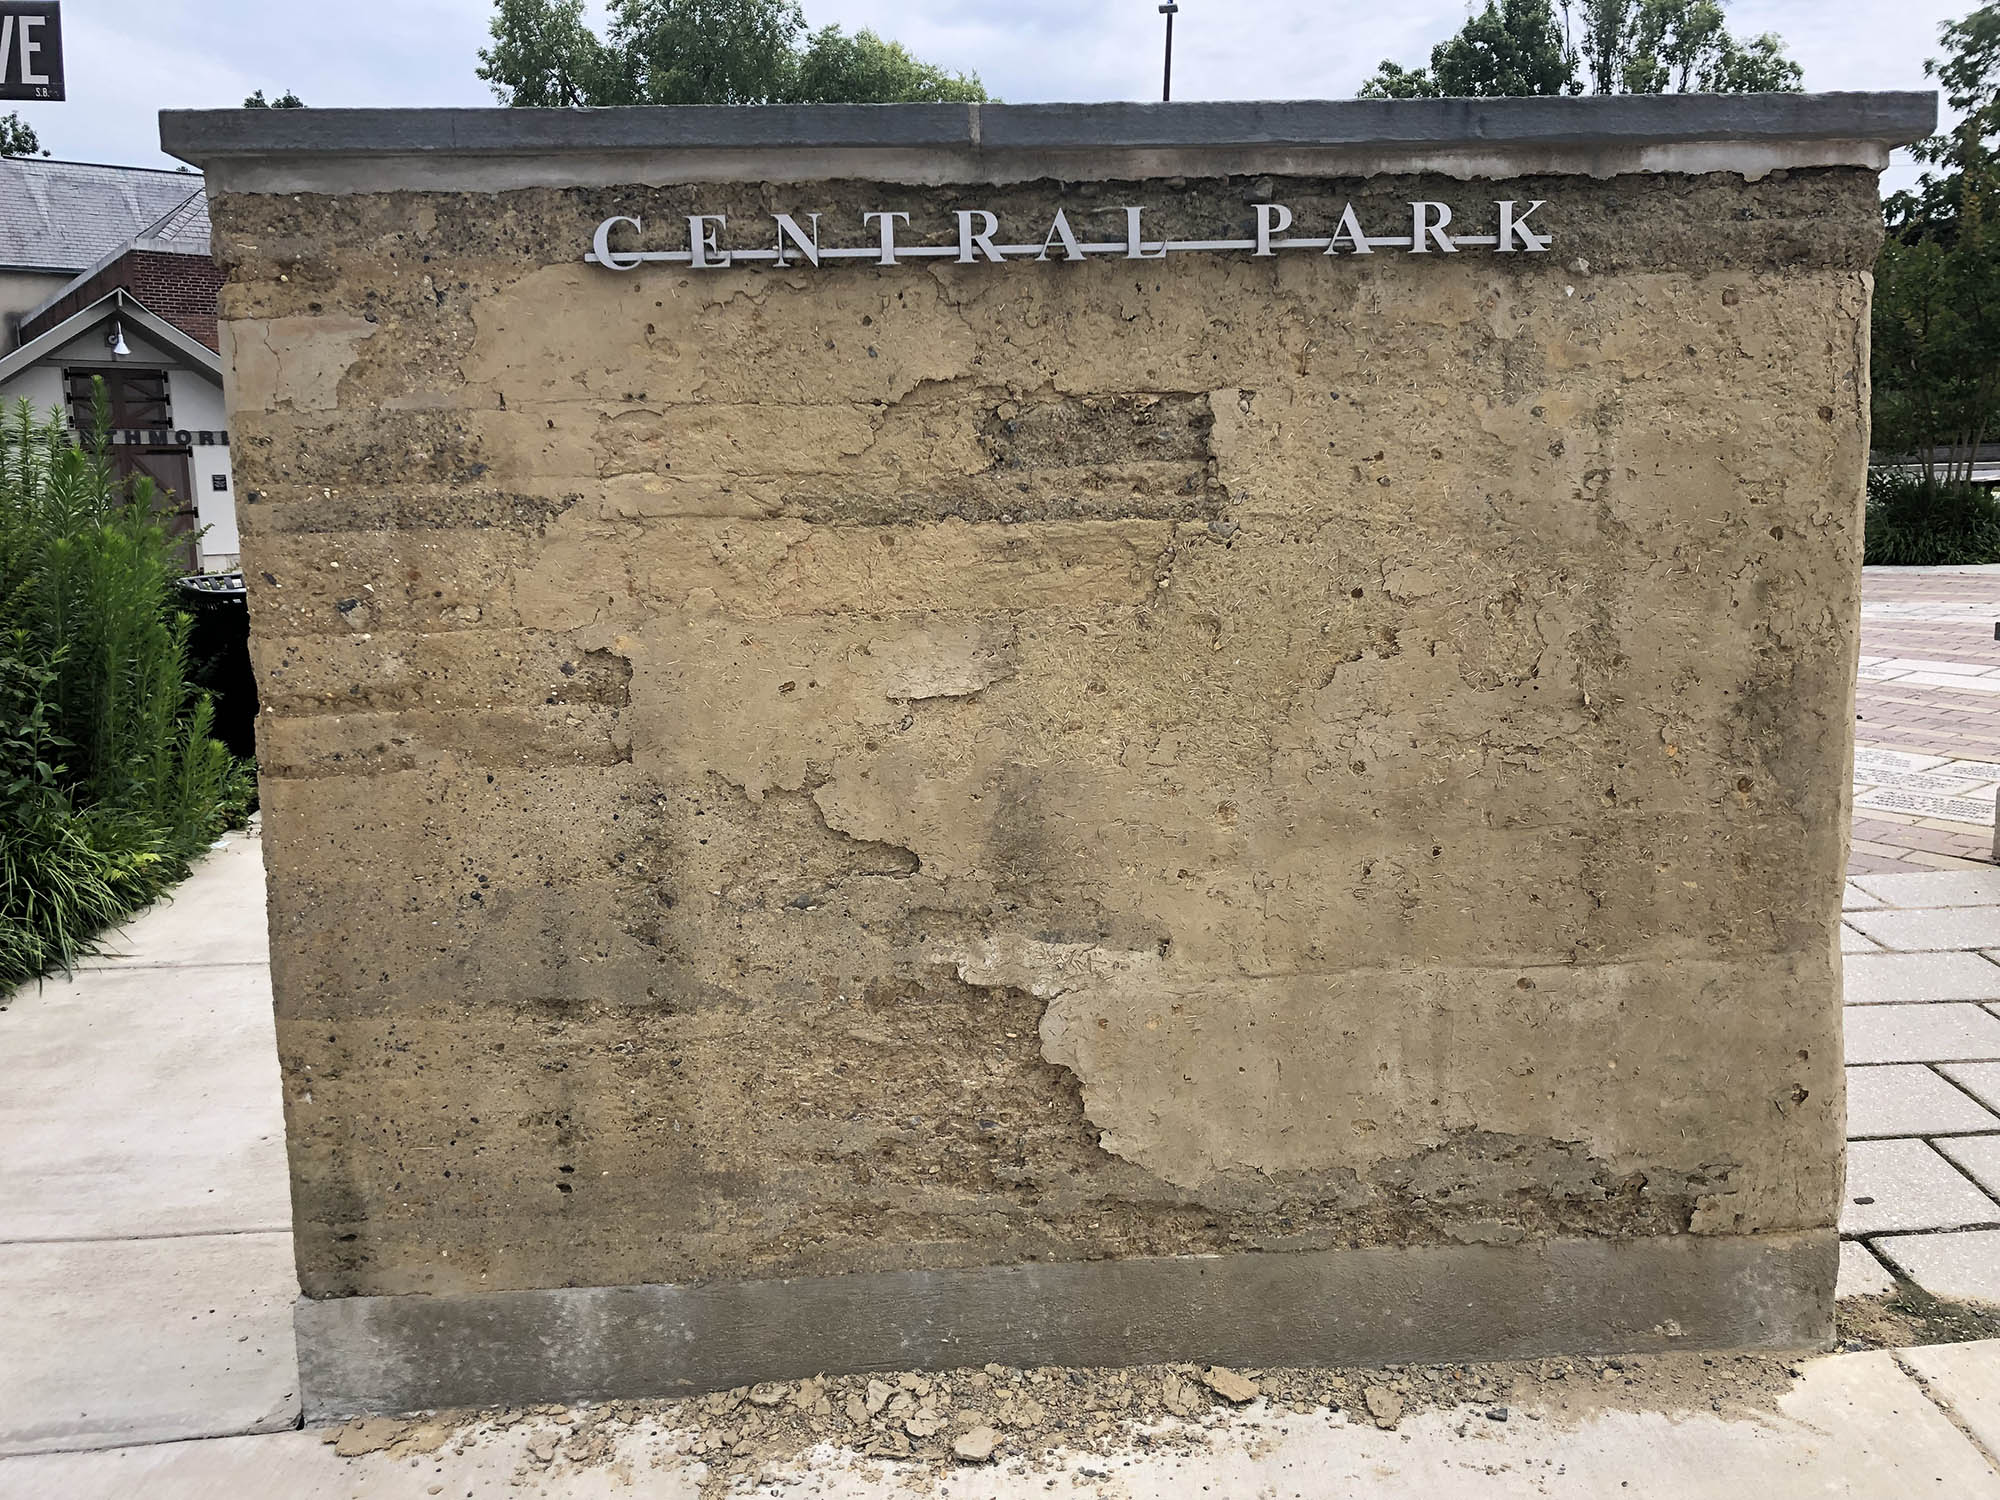 """Crumbling infrastructure: The """"rammed earth"""" walls installed in 2016 in Swarthmore's Central Park will soon be replaced by sturdier masonry, pending outcome of a bid process initiated at Borough Council's July 1 meeting"""